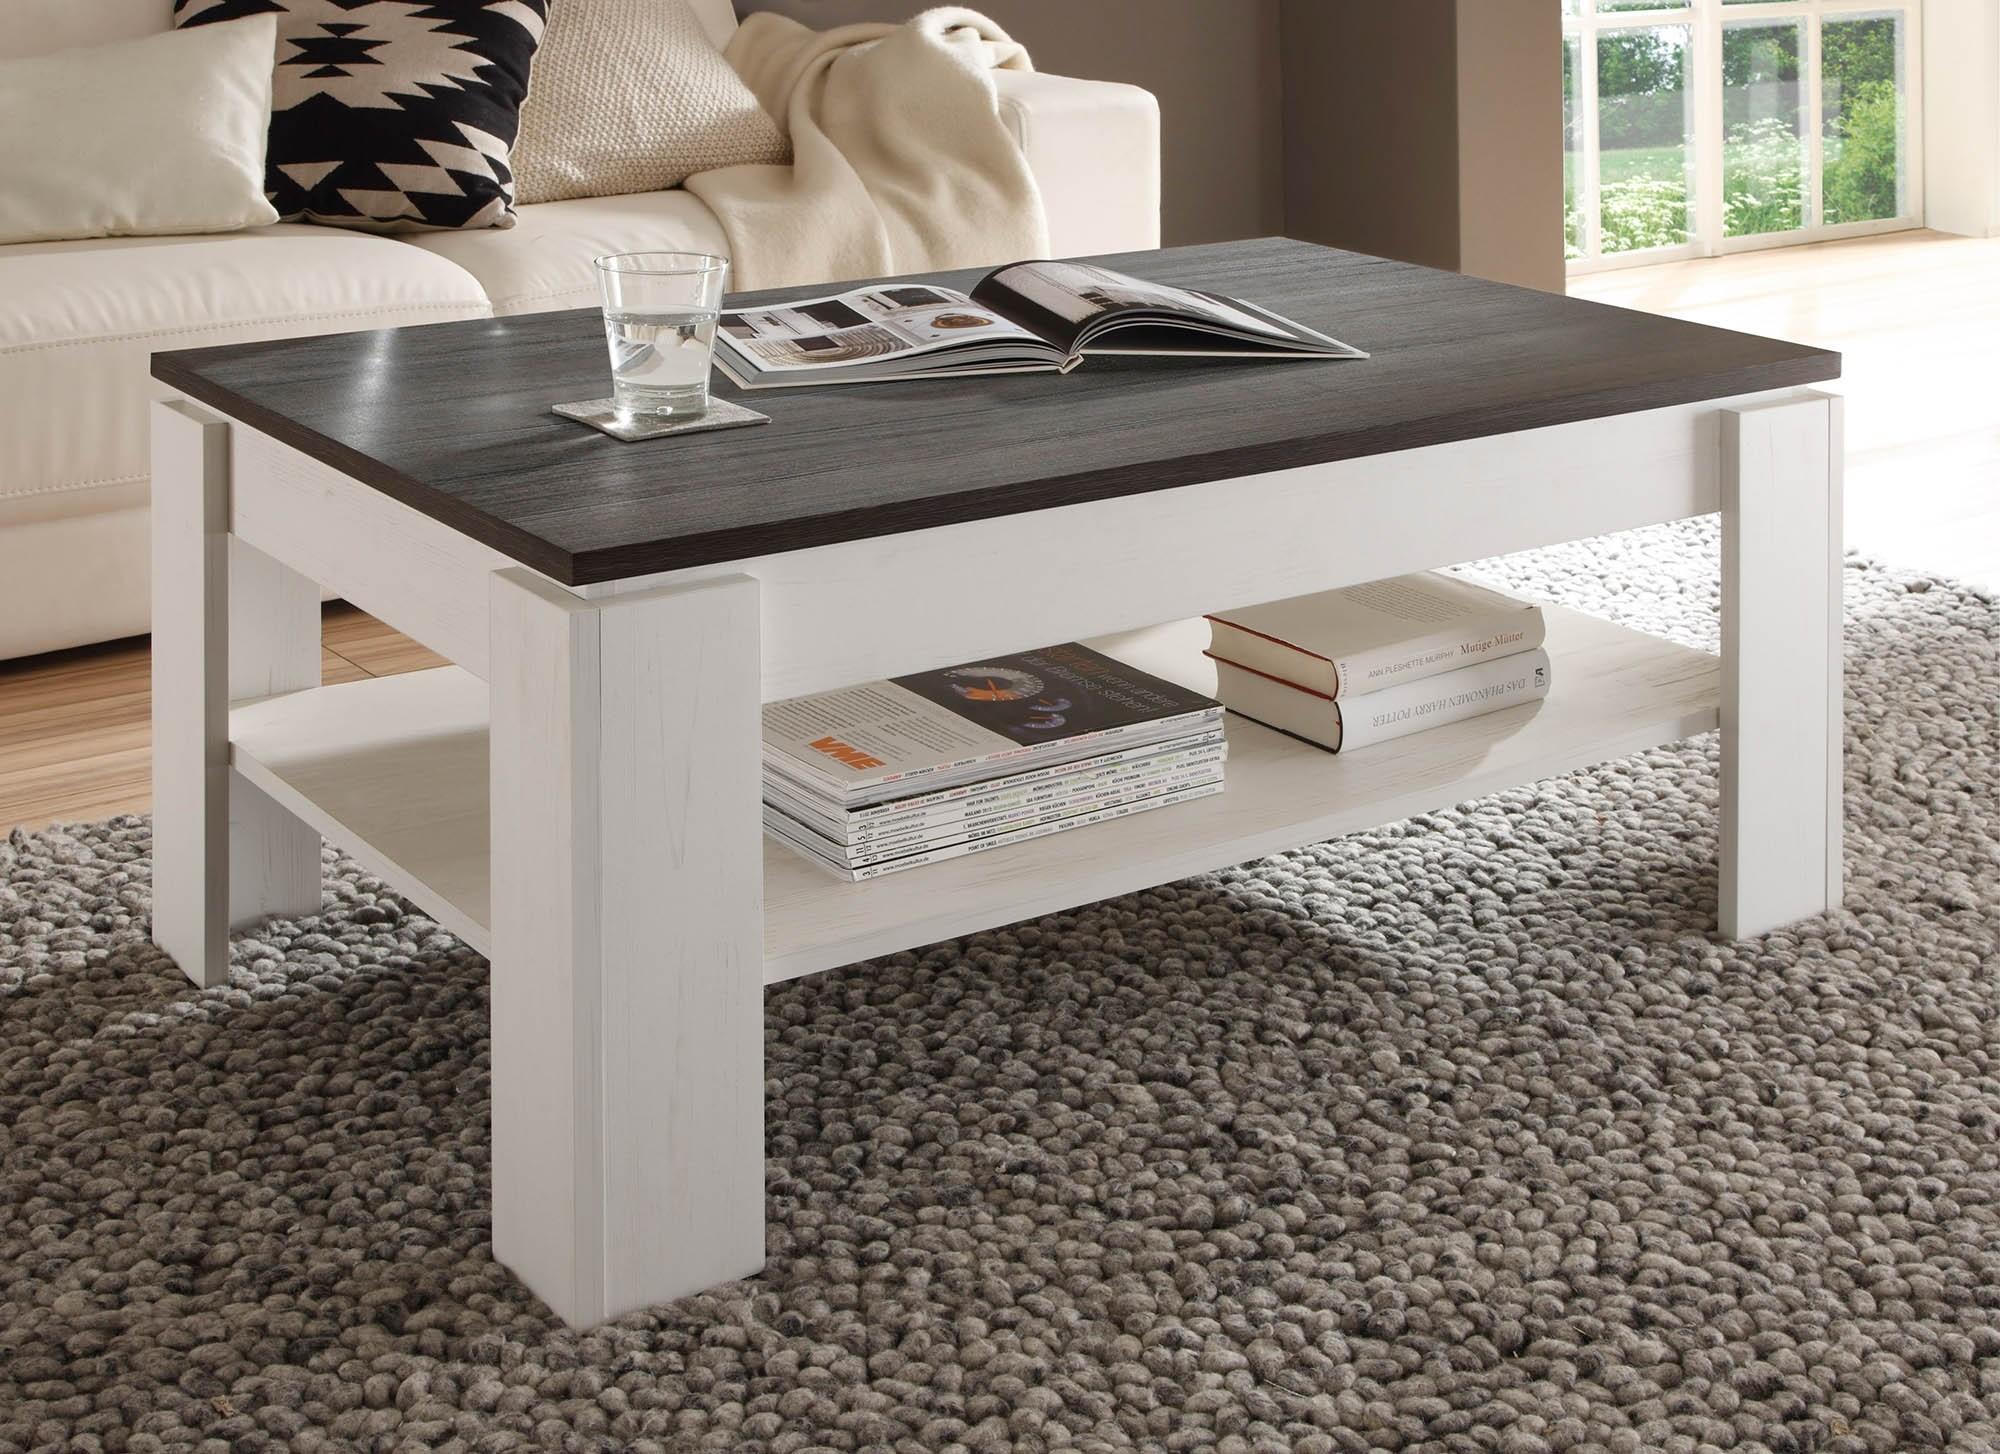 Image Result For Couchtisch Skandi